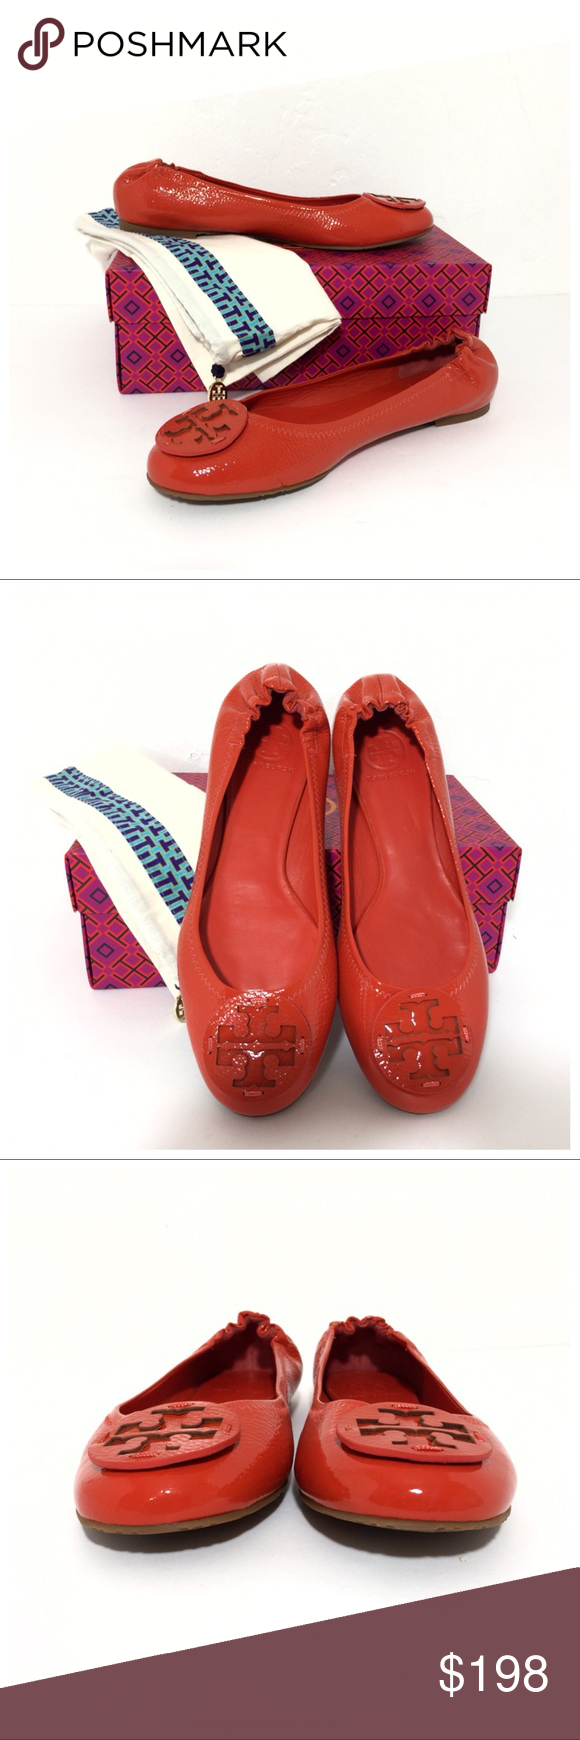 10559a446ea030 NIB Tory Burch Tumbled Patent Leather Reva Flats Brand new authentic Tory  Burch Flaming Red